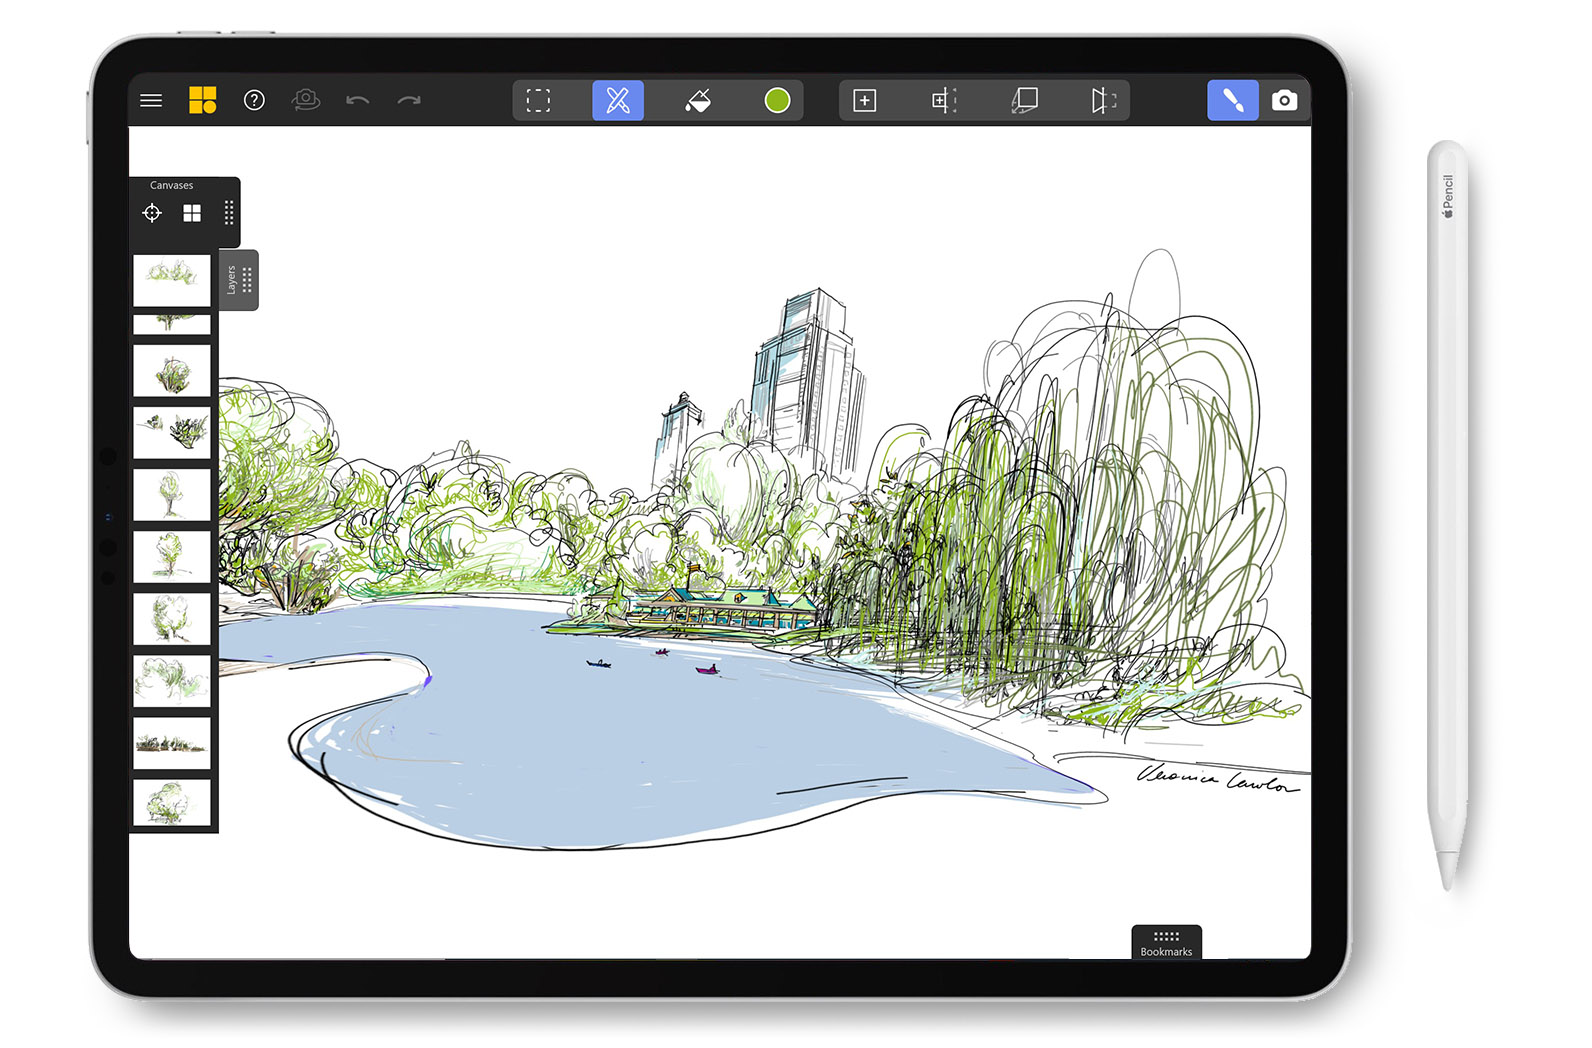 iPad with apple pencil.  Screen shows an illustration of central park created in Mental Canvas